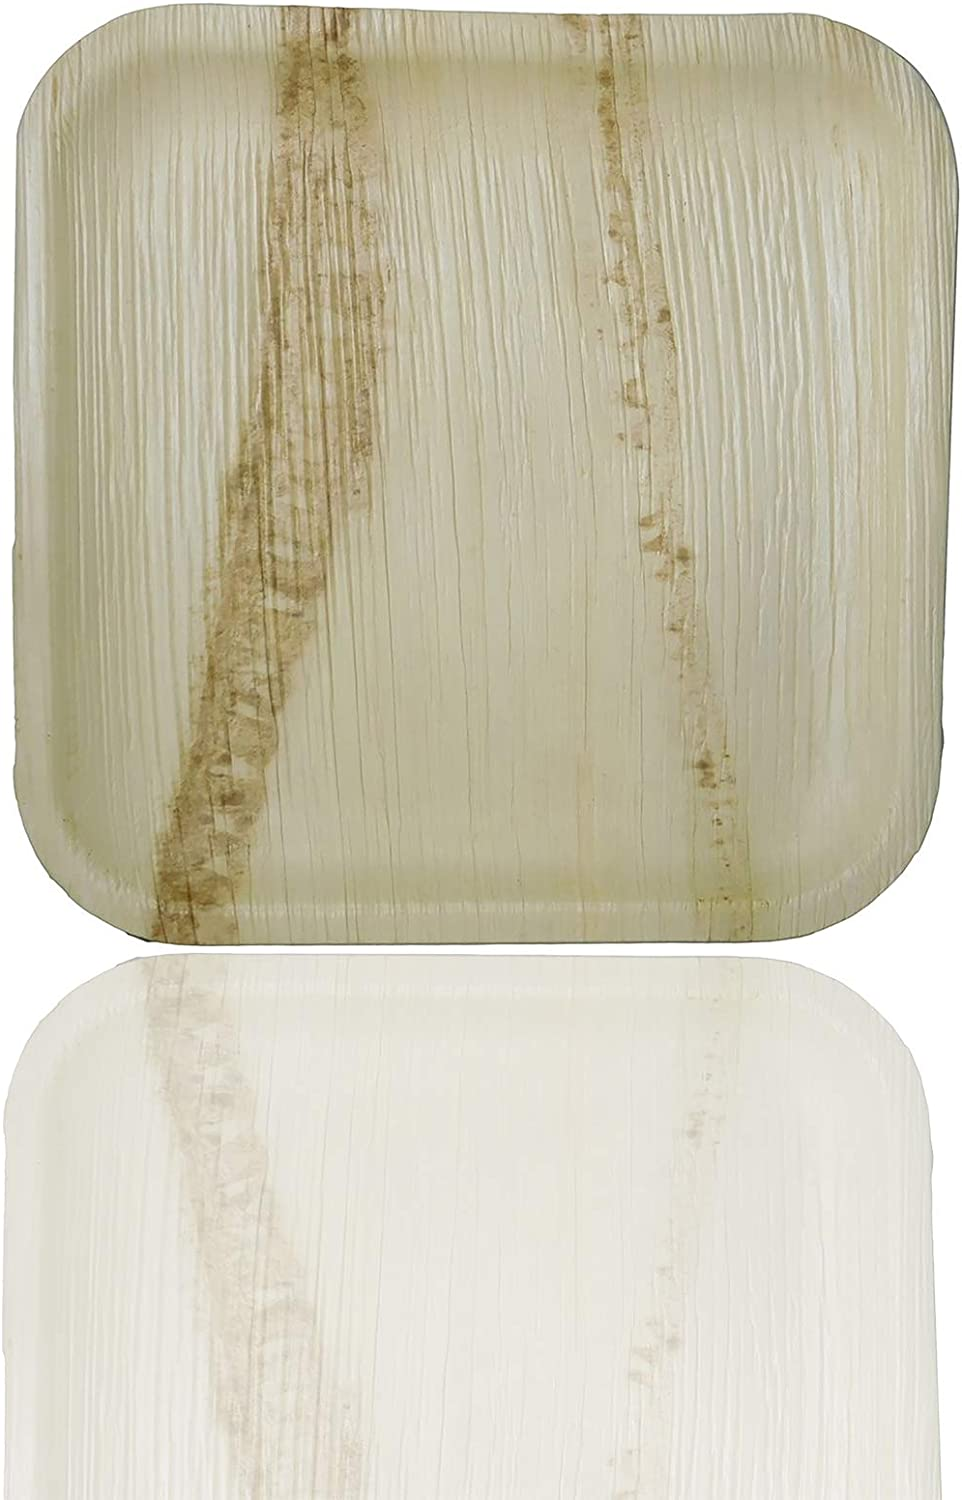 Palm Naki Square Palm Leaf Plates - Disposable Dinnerware Set, Compostable and Biodegradable Dinner Plates - Palm Leaves Wood Plates, - 40 Count 10 inch Square Plates